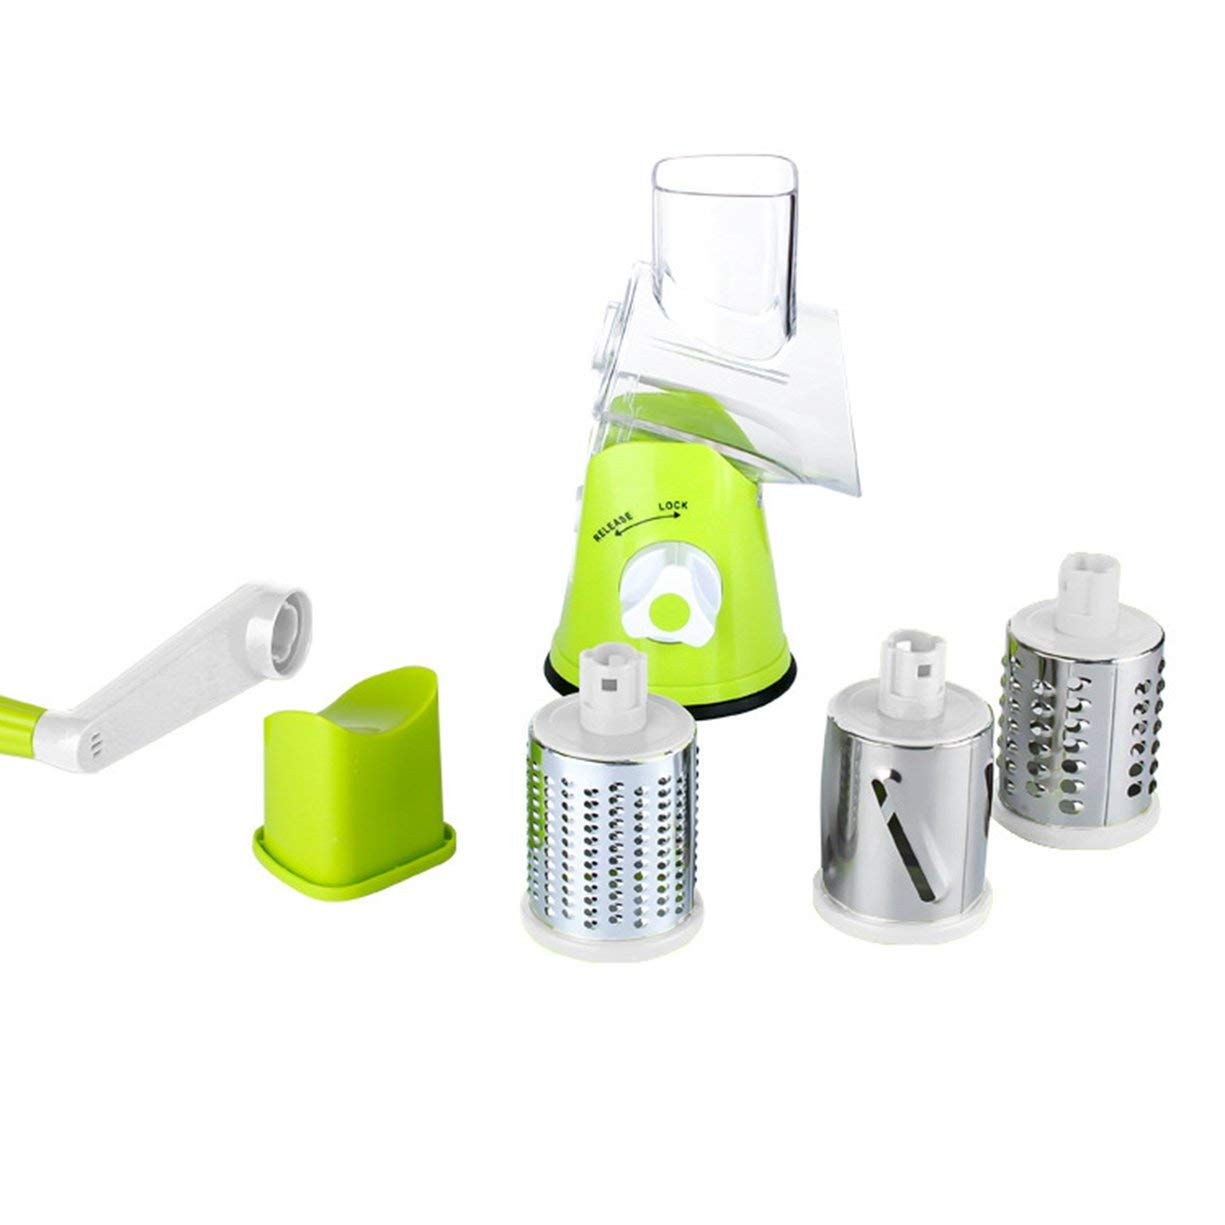 Multifunctional Vegetable Shredder,Multifunctional Vegetable Shredder Hand Drum Rotary Grater Shred Potato Slicer Roller Shape Stainless Steel Crank Handle